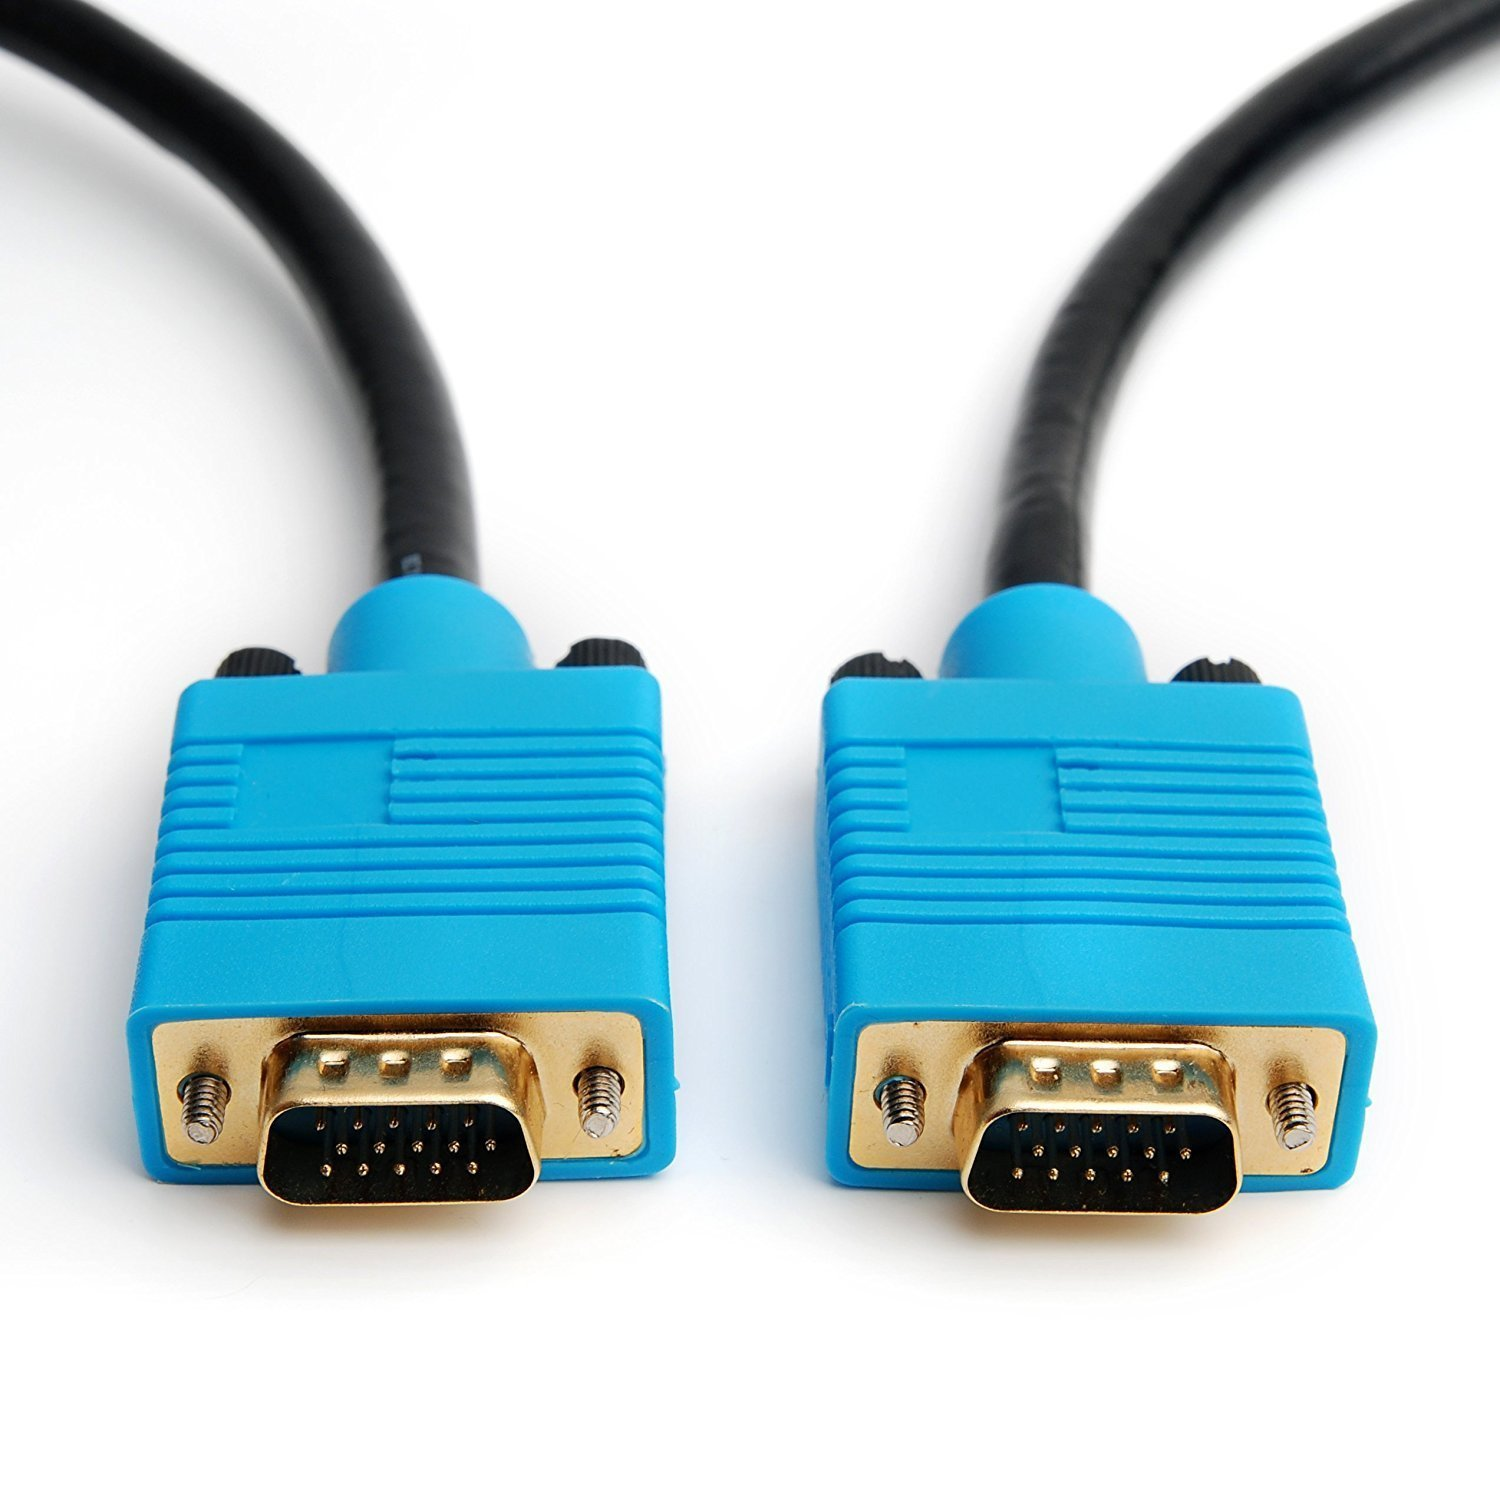 CPO 10M Gold Plated VGA HD15 DDC Monitor SVGA Cable - Black and Blue 1.5209999999999999